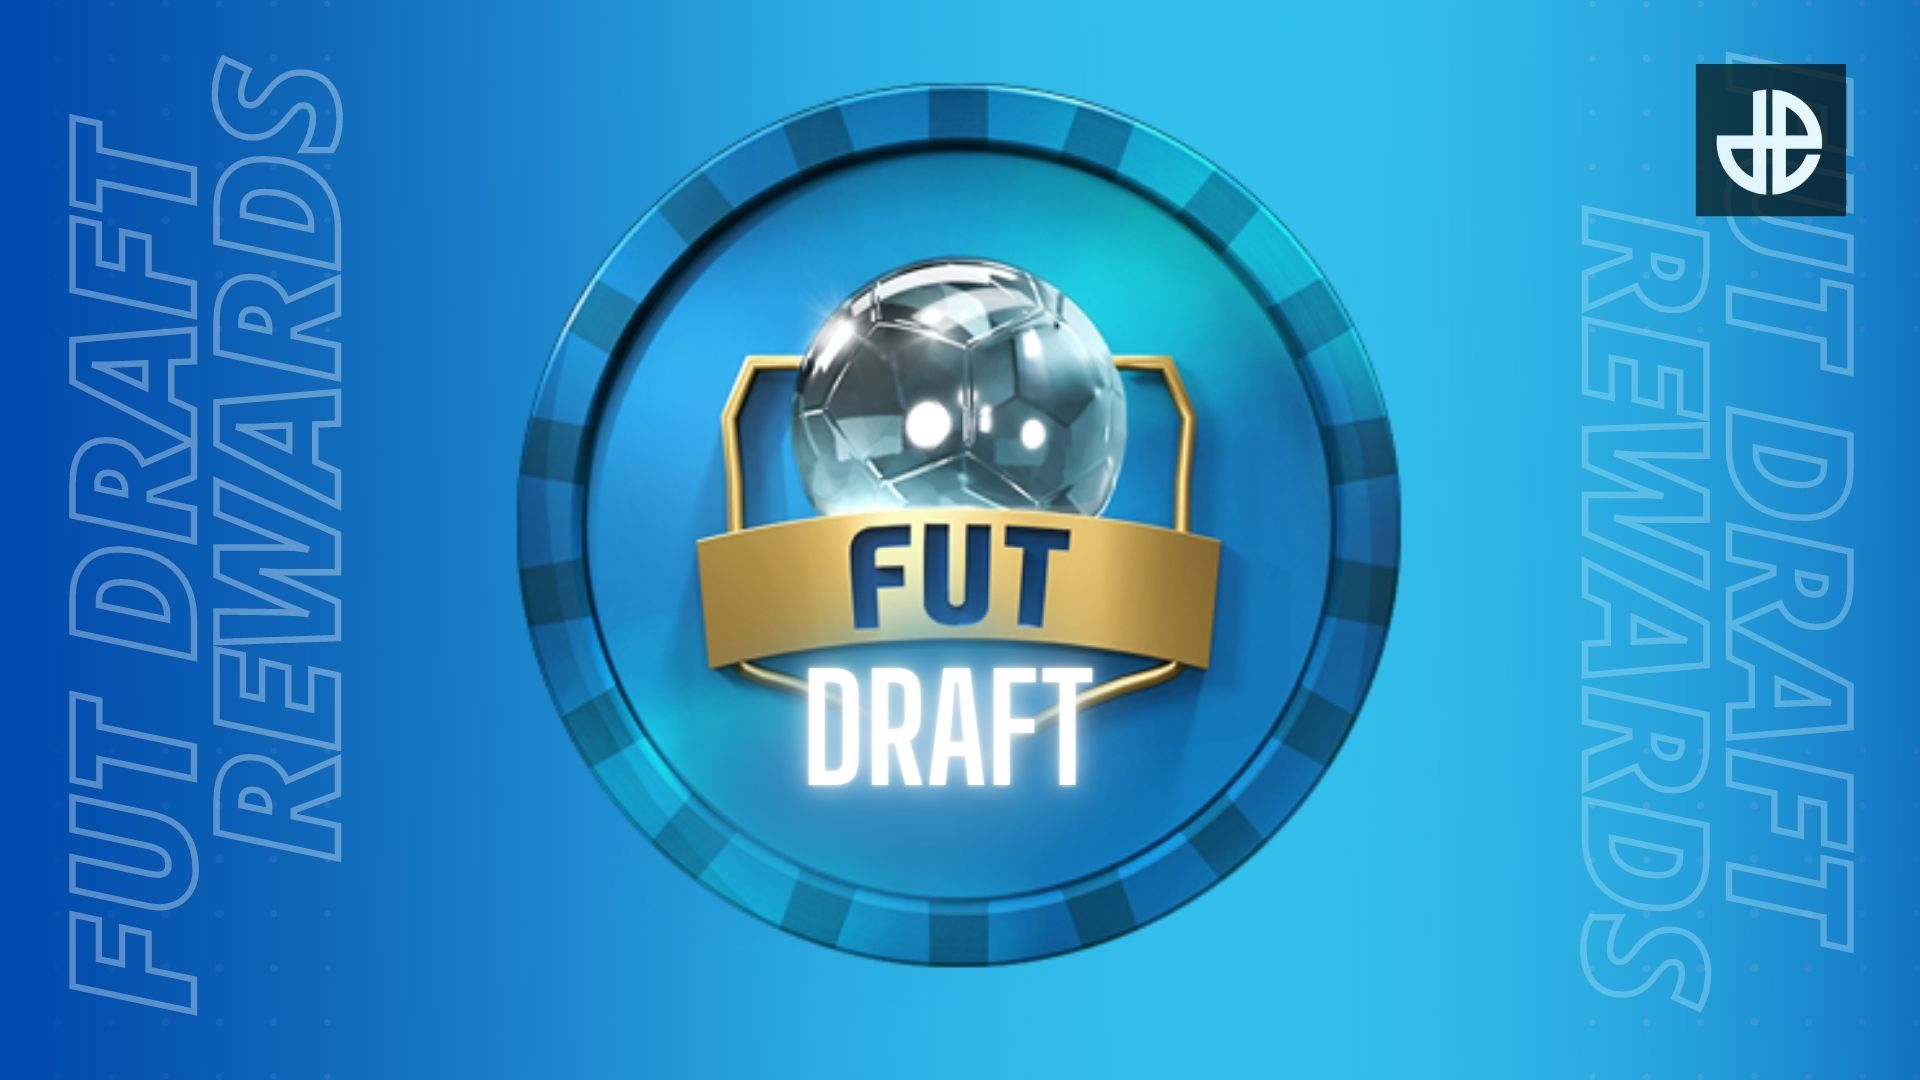 FIFA 21 FUT Draft Ultimate Team rewards